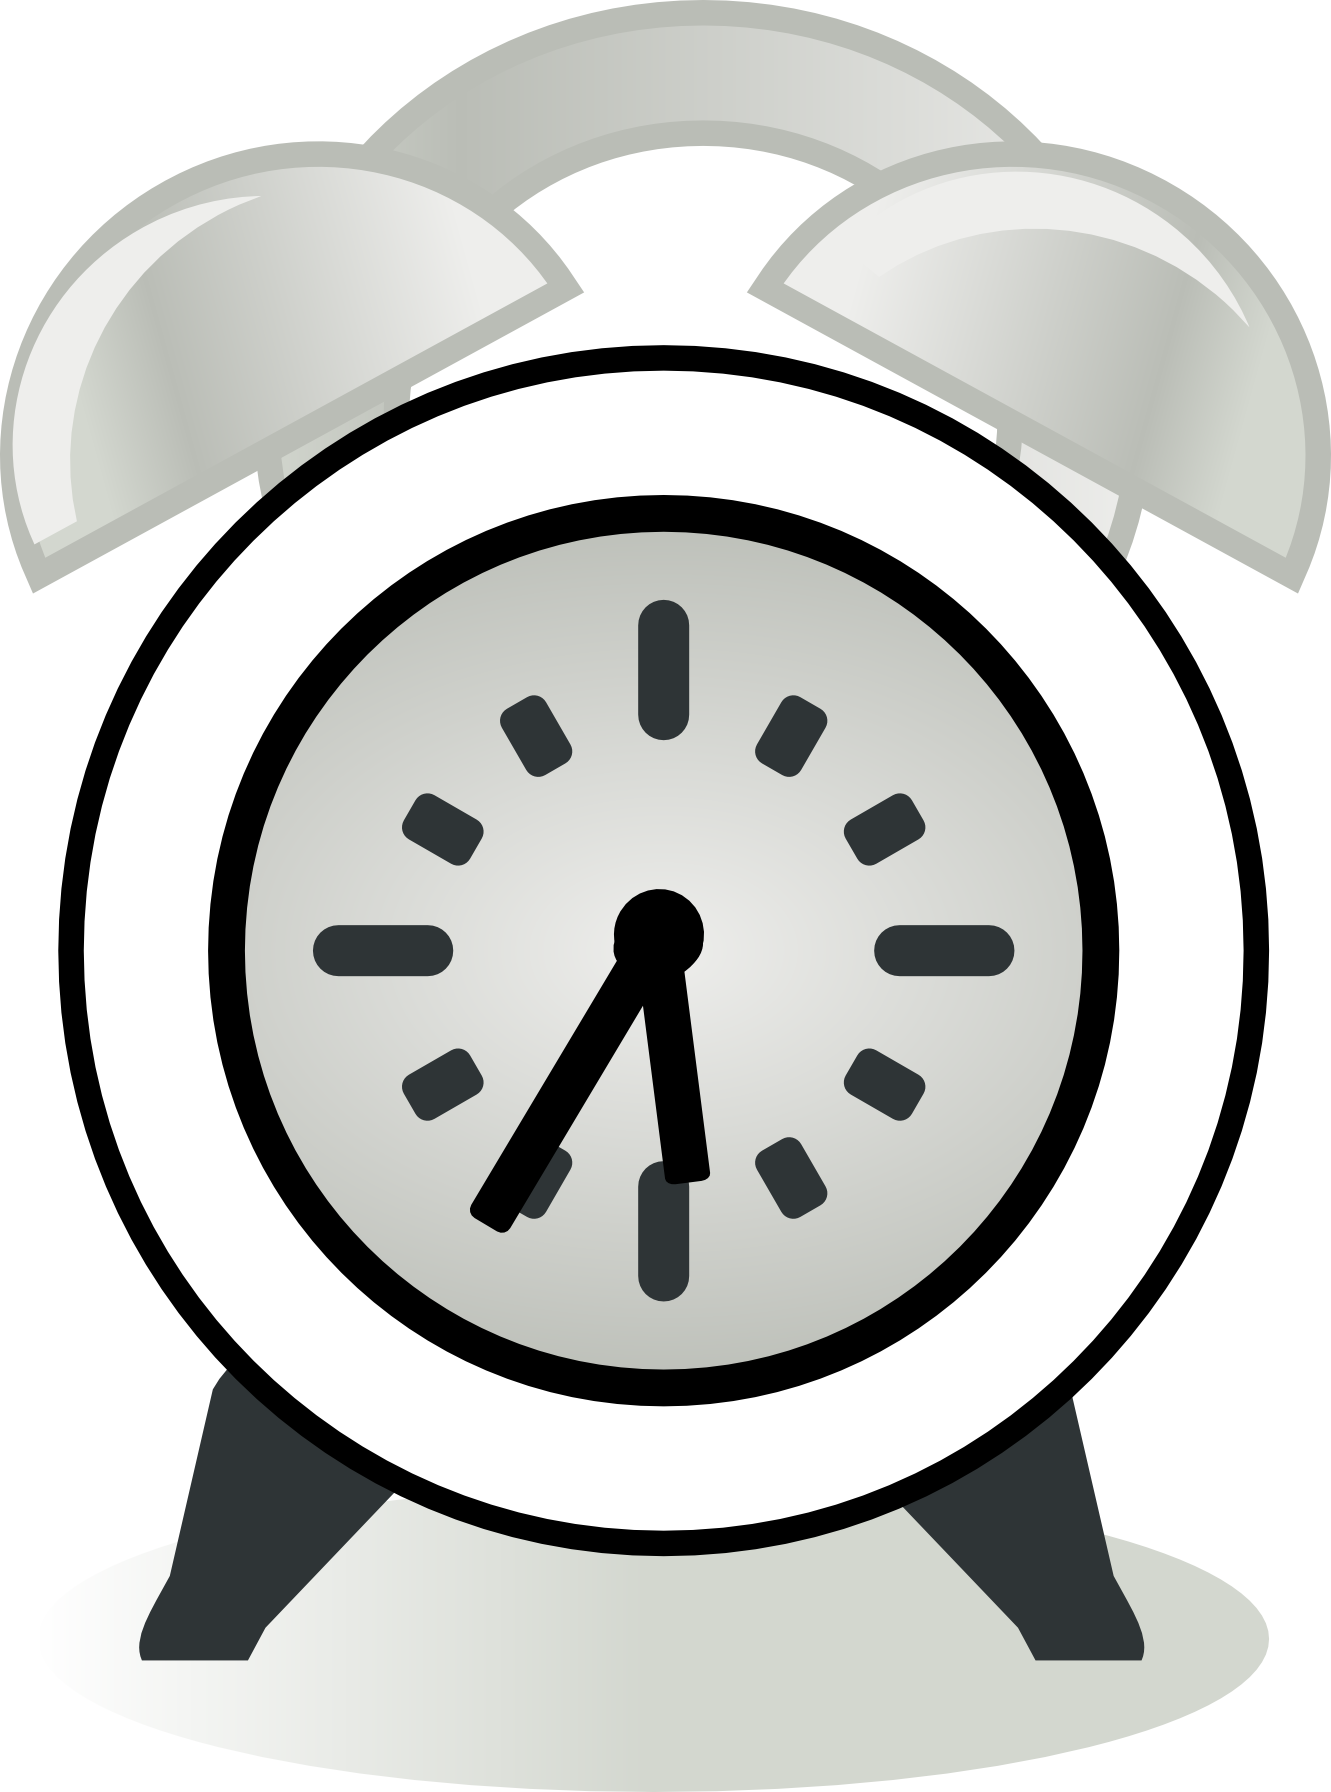 Car . 7 clipart alarm clock